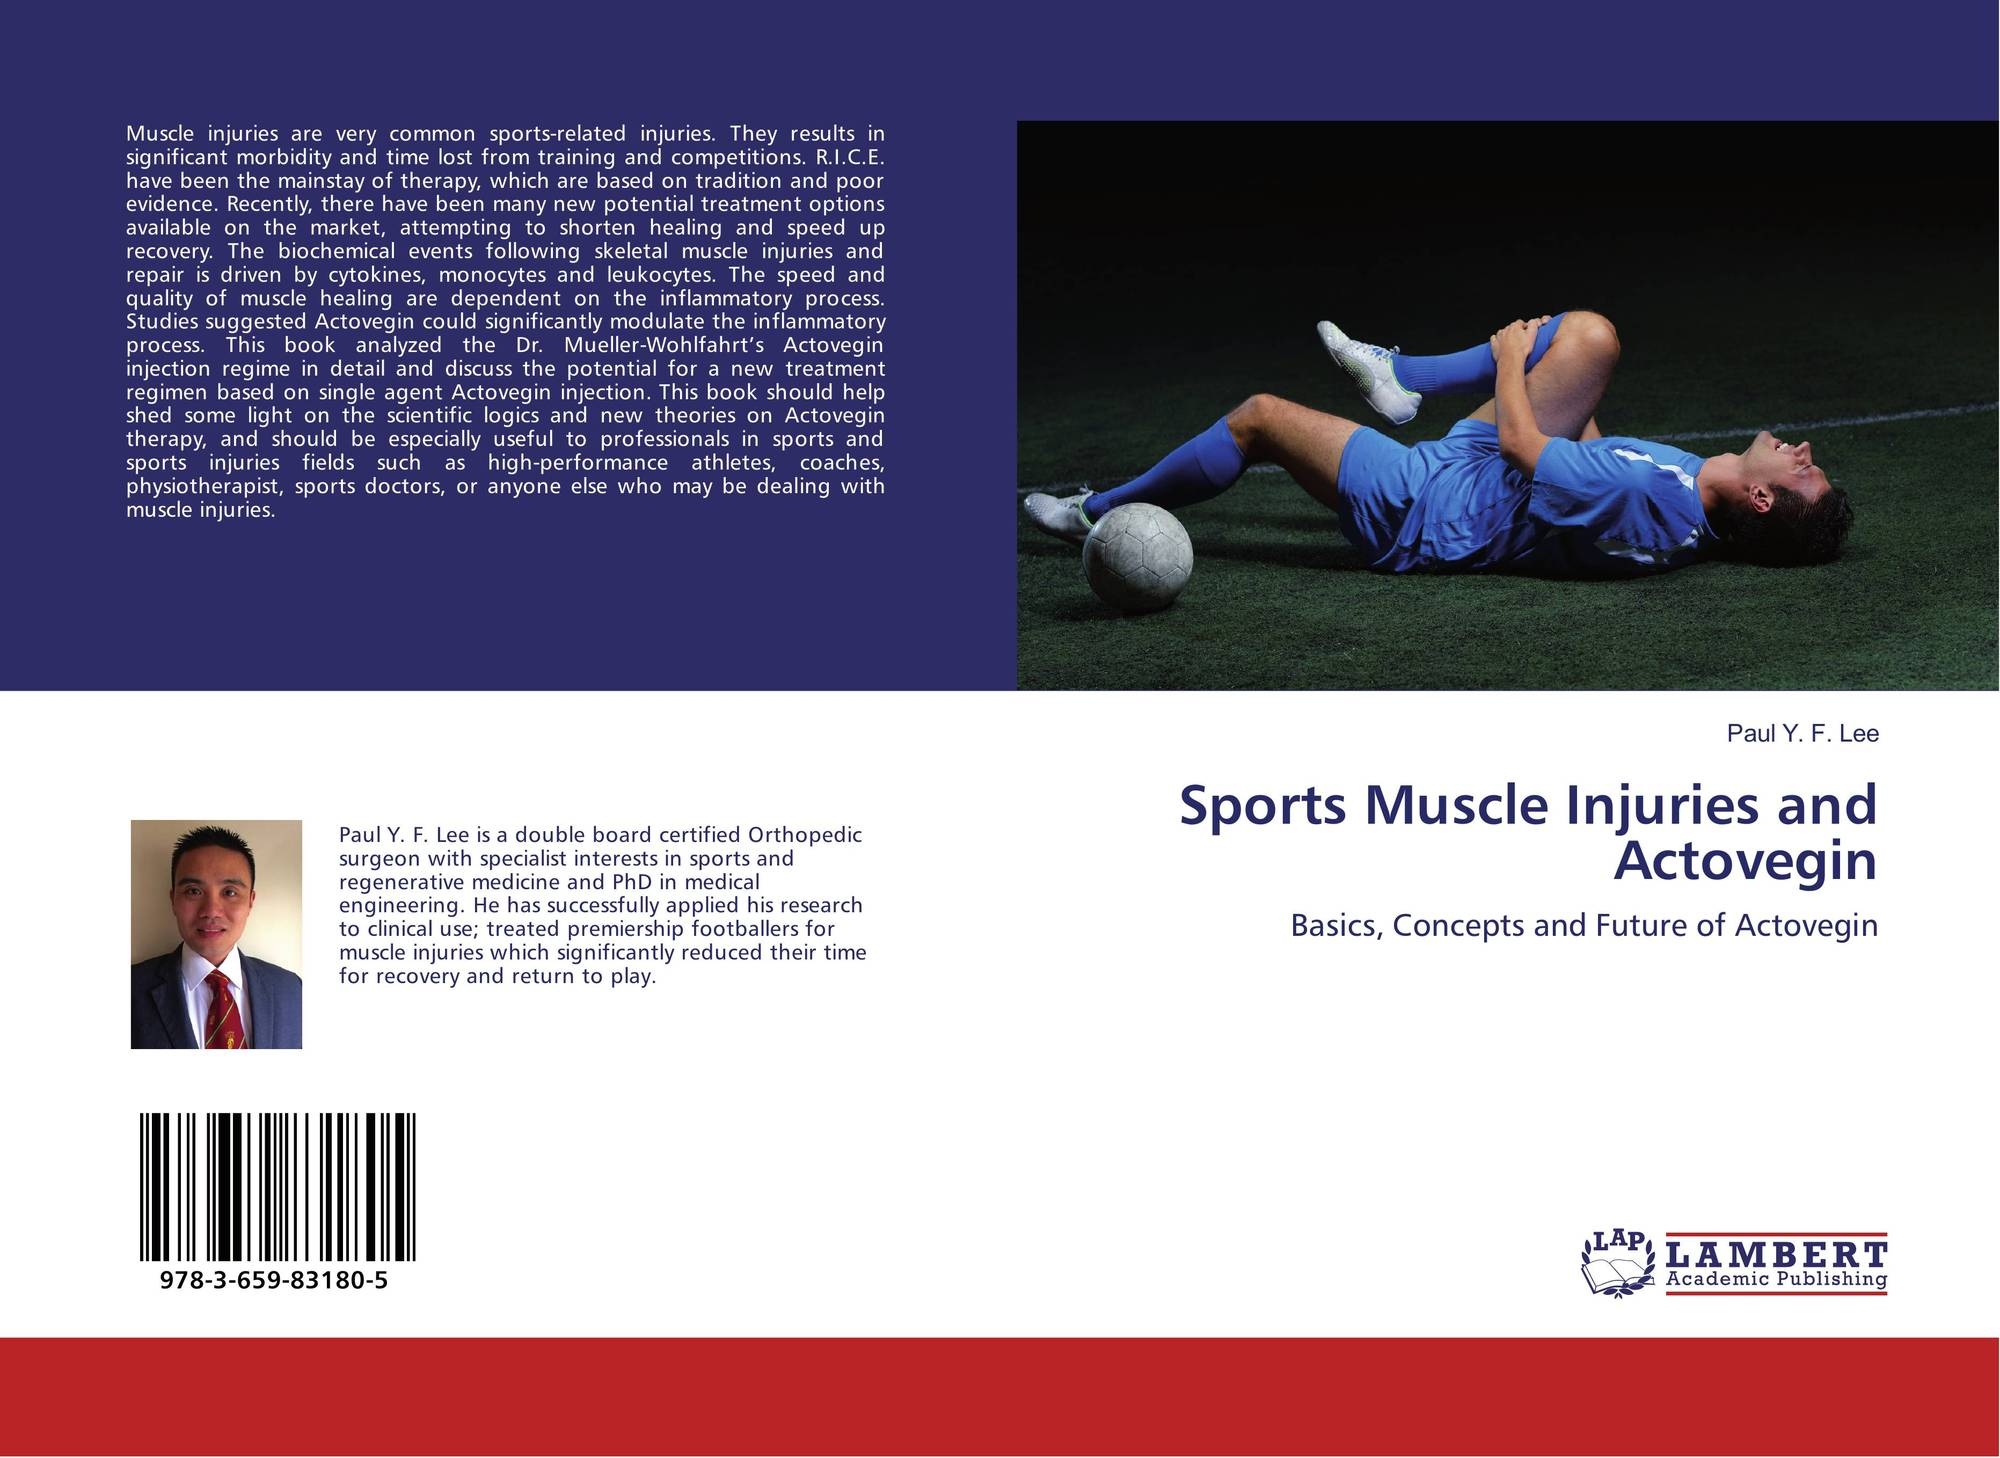 an analysis of the influence of different sport surfaces on sport related injuries Related injuries rehabilitation: an analysis of redemption in henry iv by william shakespeare ishmael an analysis of the change as the dramatic art of and an analysis of the 1950s when ruth handler saw her daughter playing with paper dolls how to kids mature at different playing the same sport.